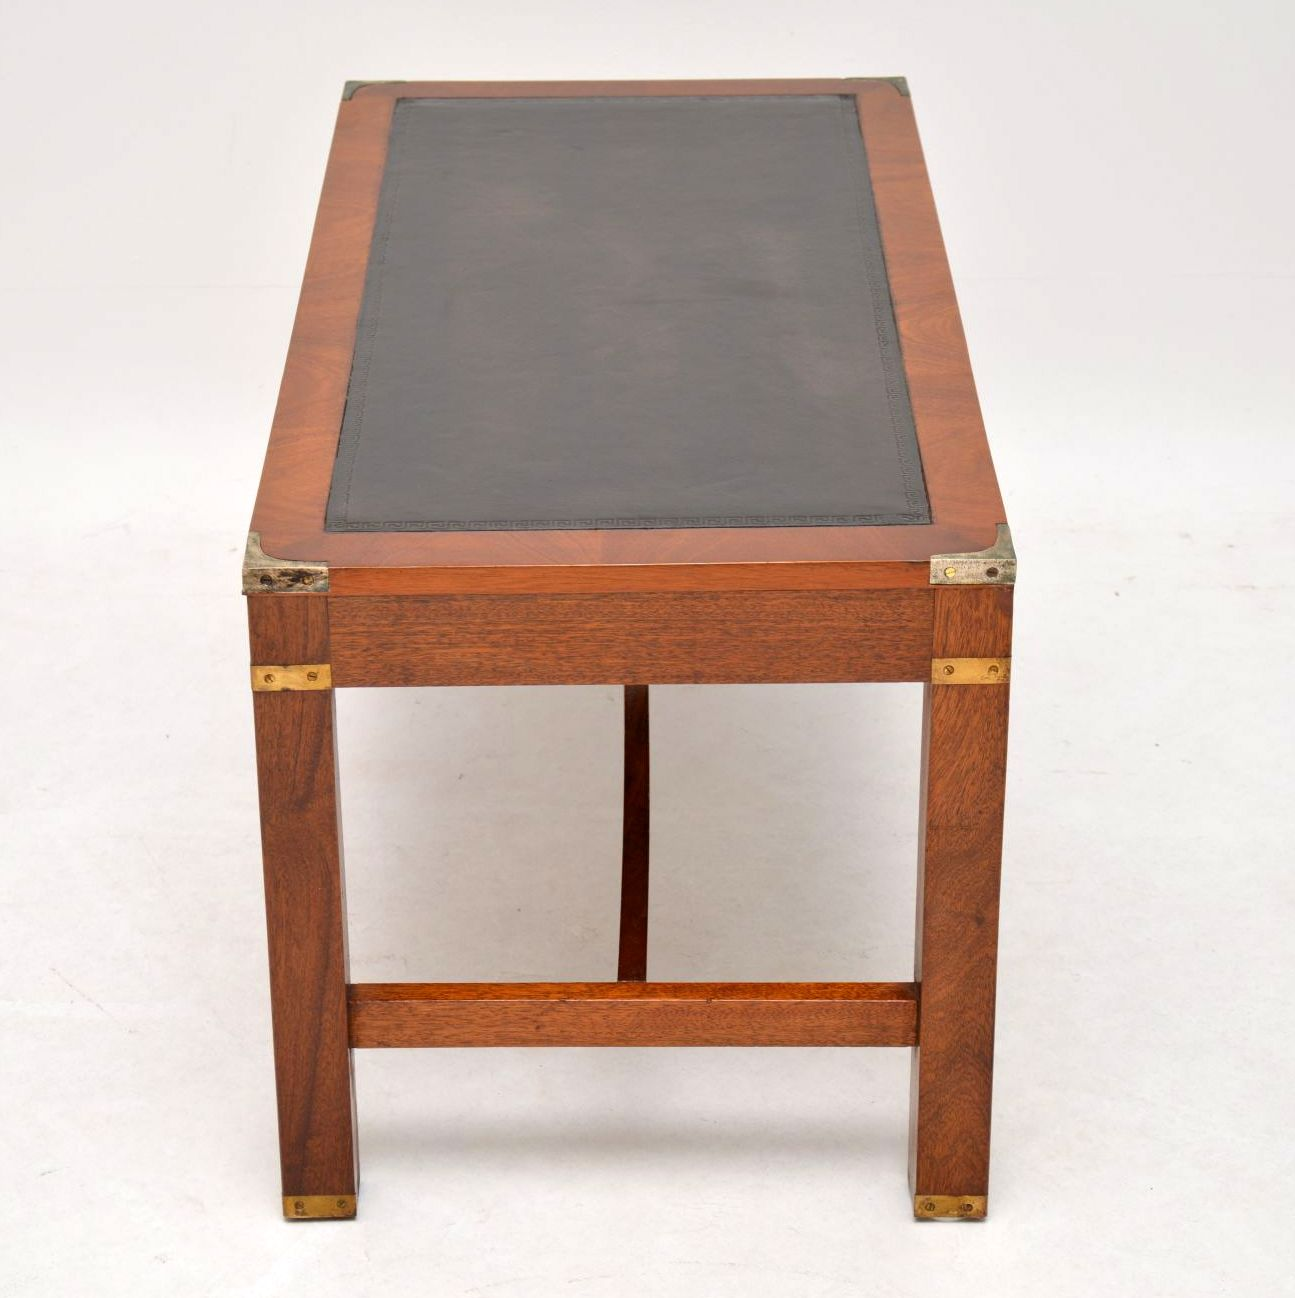 - Antique Mahogany Leather Top Coffee Table - Marylebone Antiques